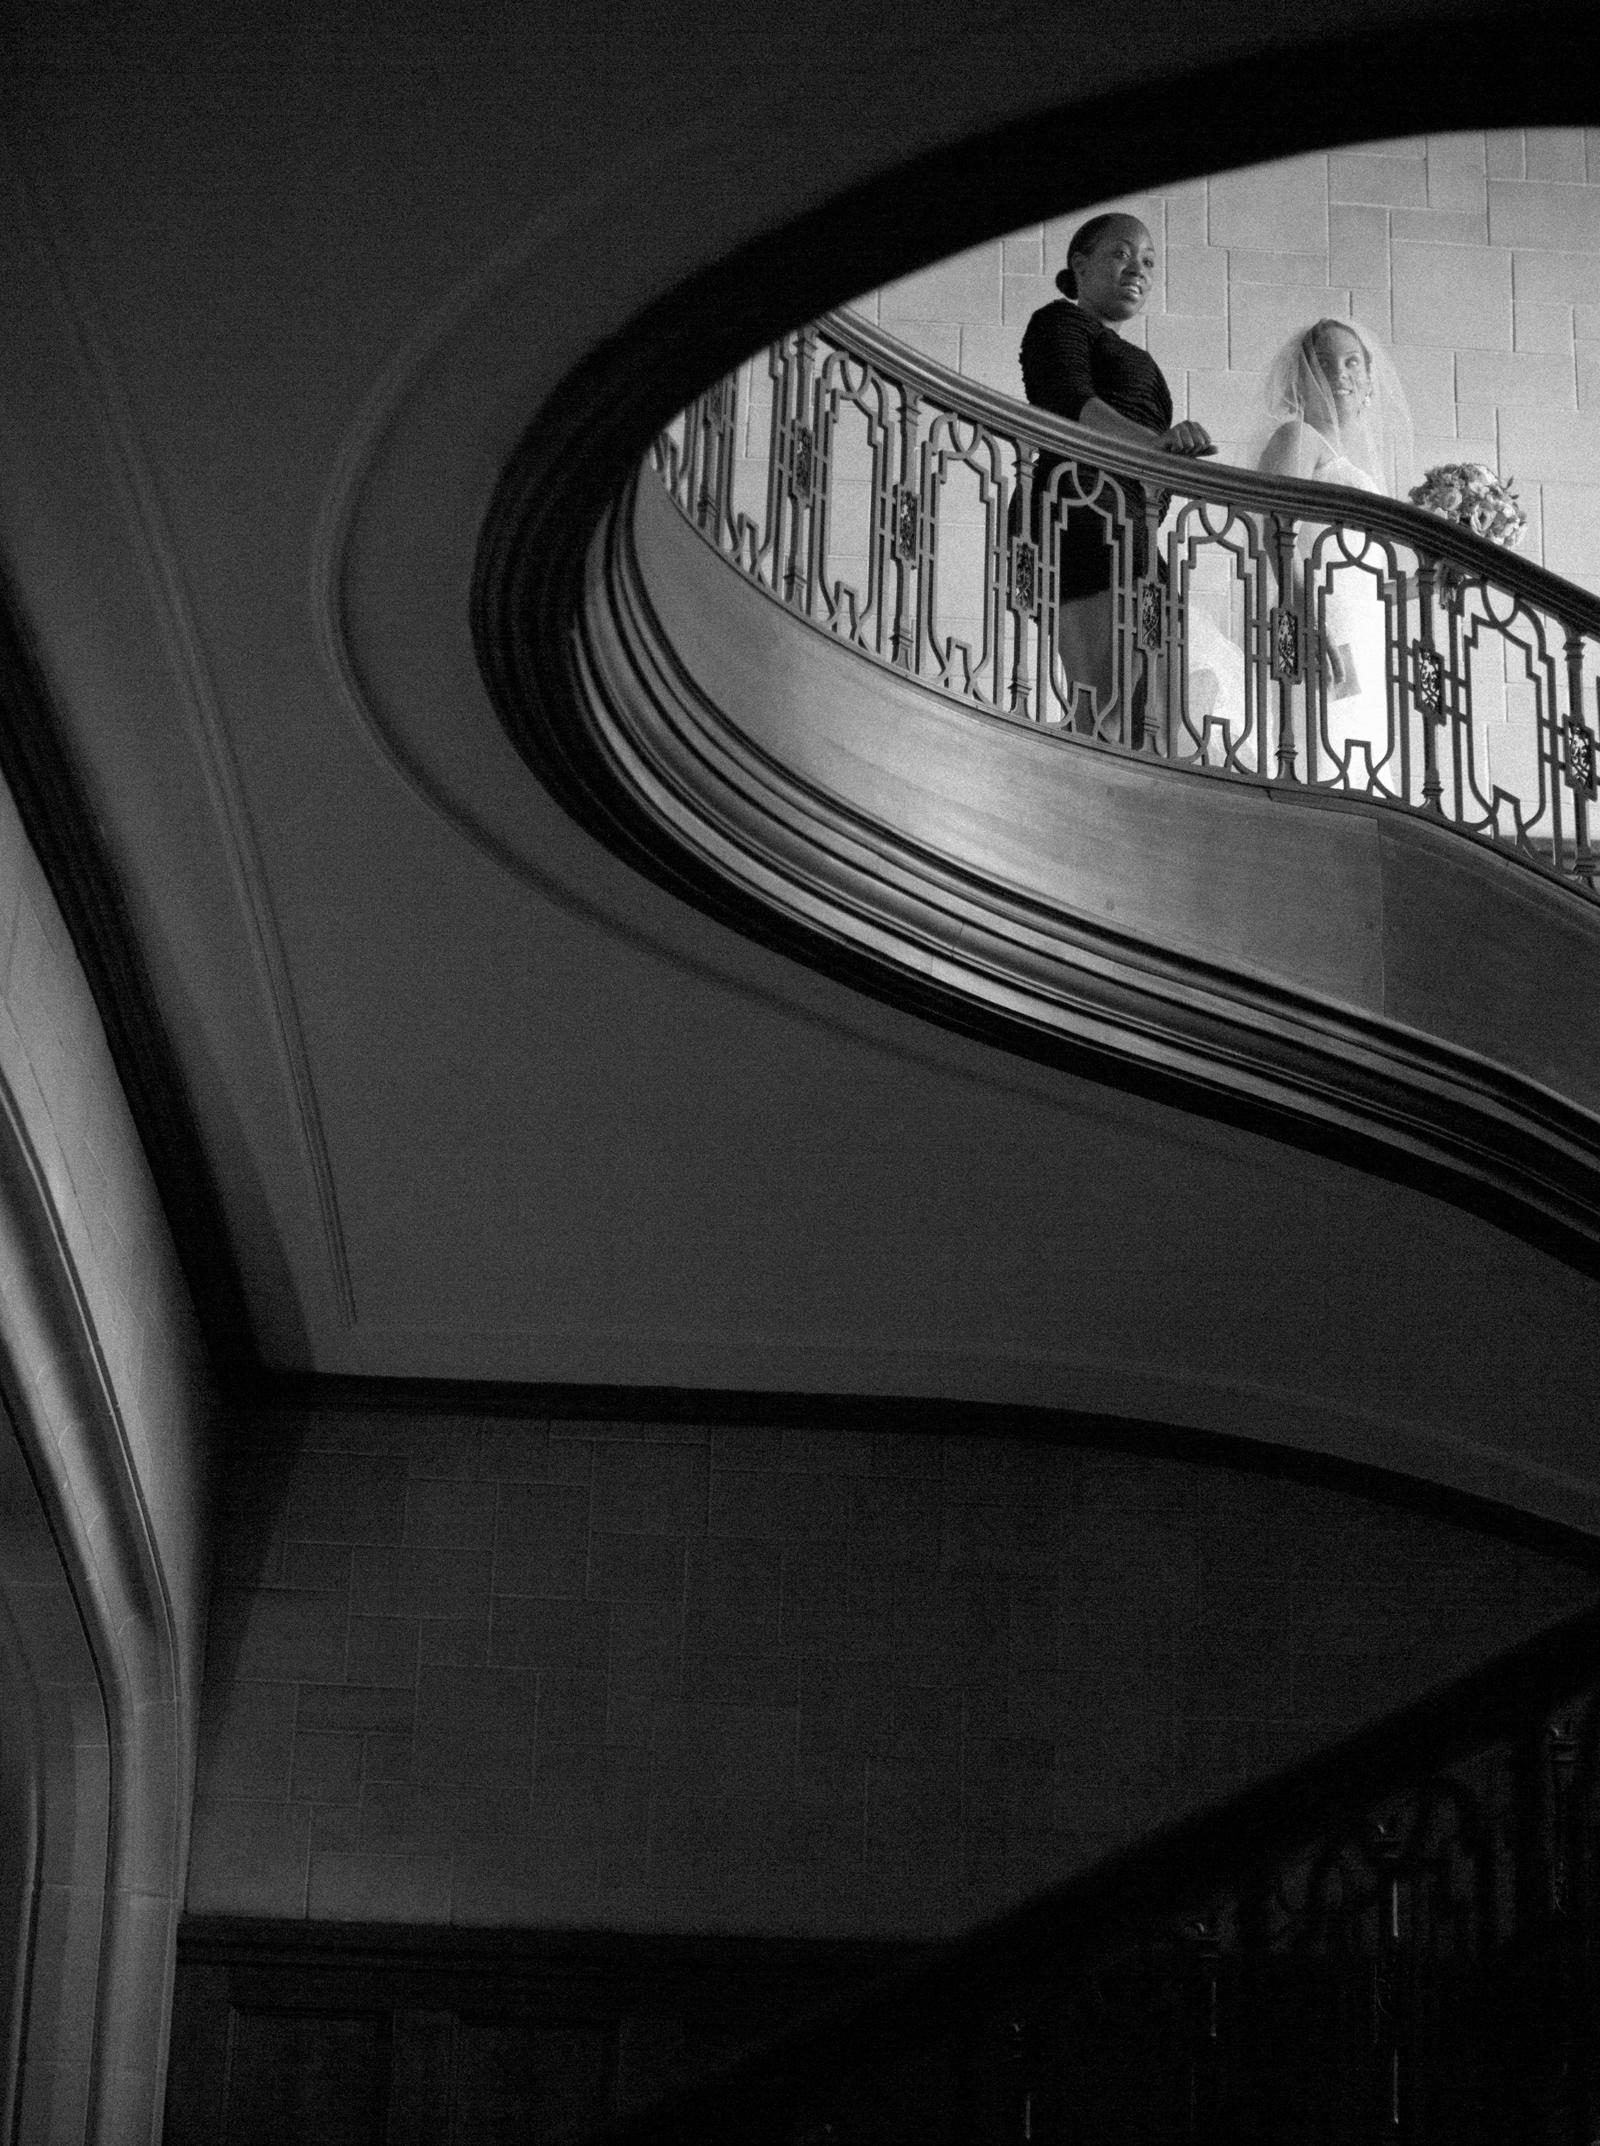 Wedding Photography | A bride decends the stairway, on the way to her wedding.